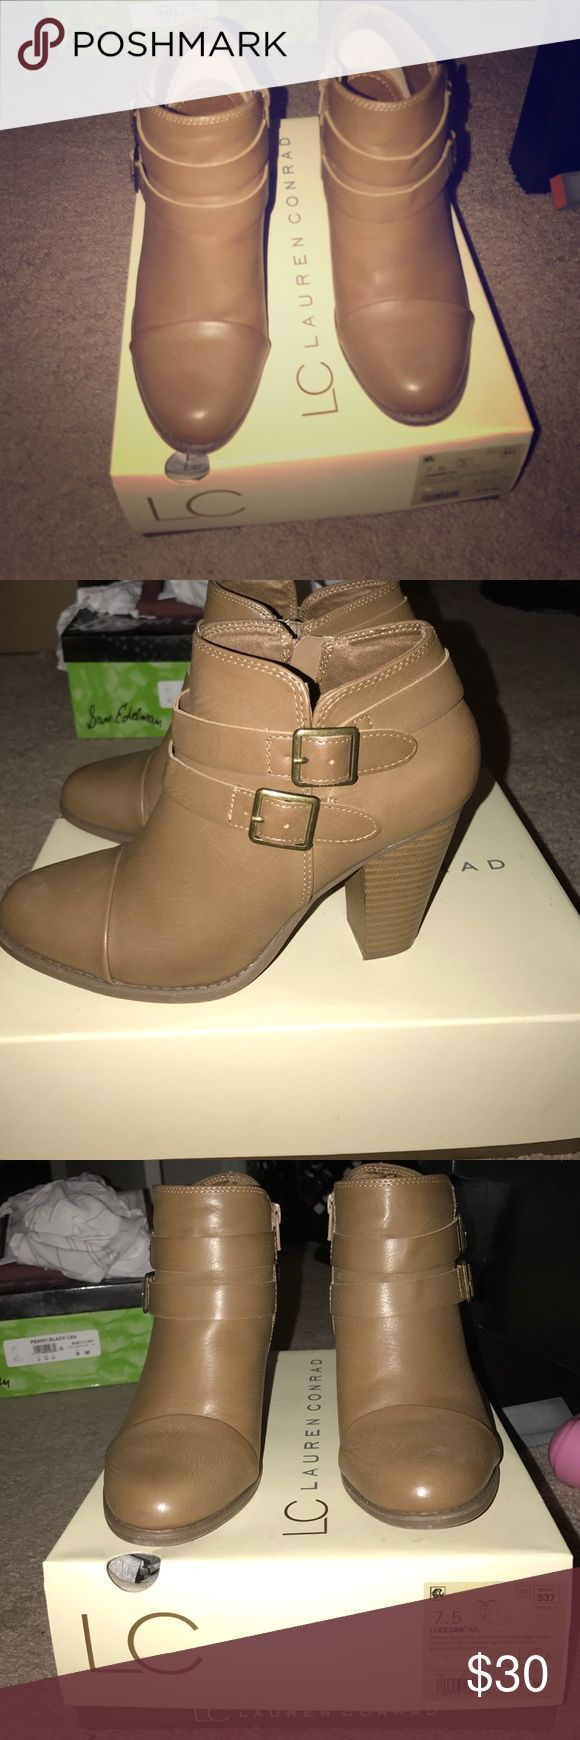 Lauren Conrad tan booties Lauren Conrad tan booties with side double buckle in tan. Wore once, gently worn. Have original box. LC Lauren Conrad Shoes Ankle Boots & Booties